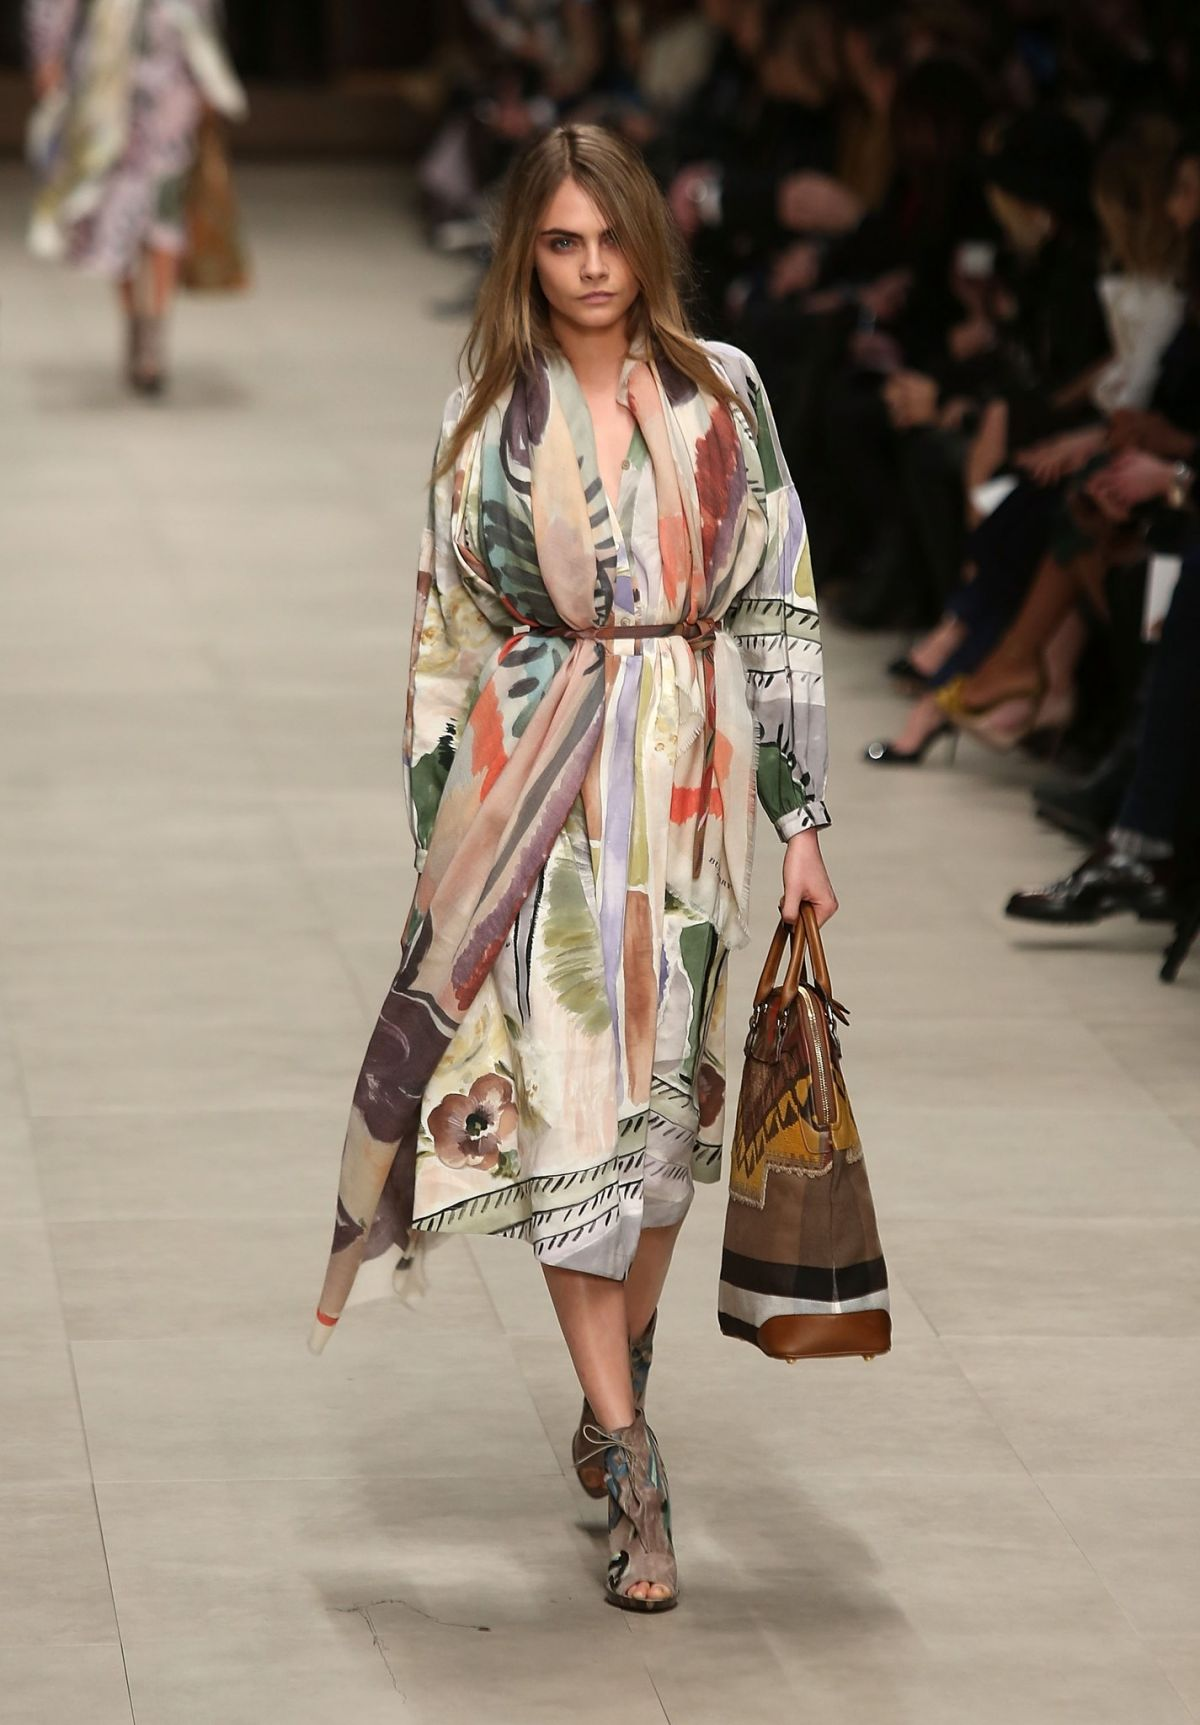 Cara delevingne on runways of burberry fall winter fashion show hawtcelebs - Burberry fashion show ...